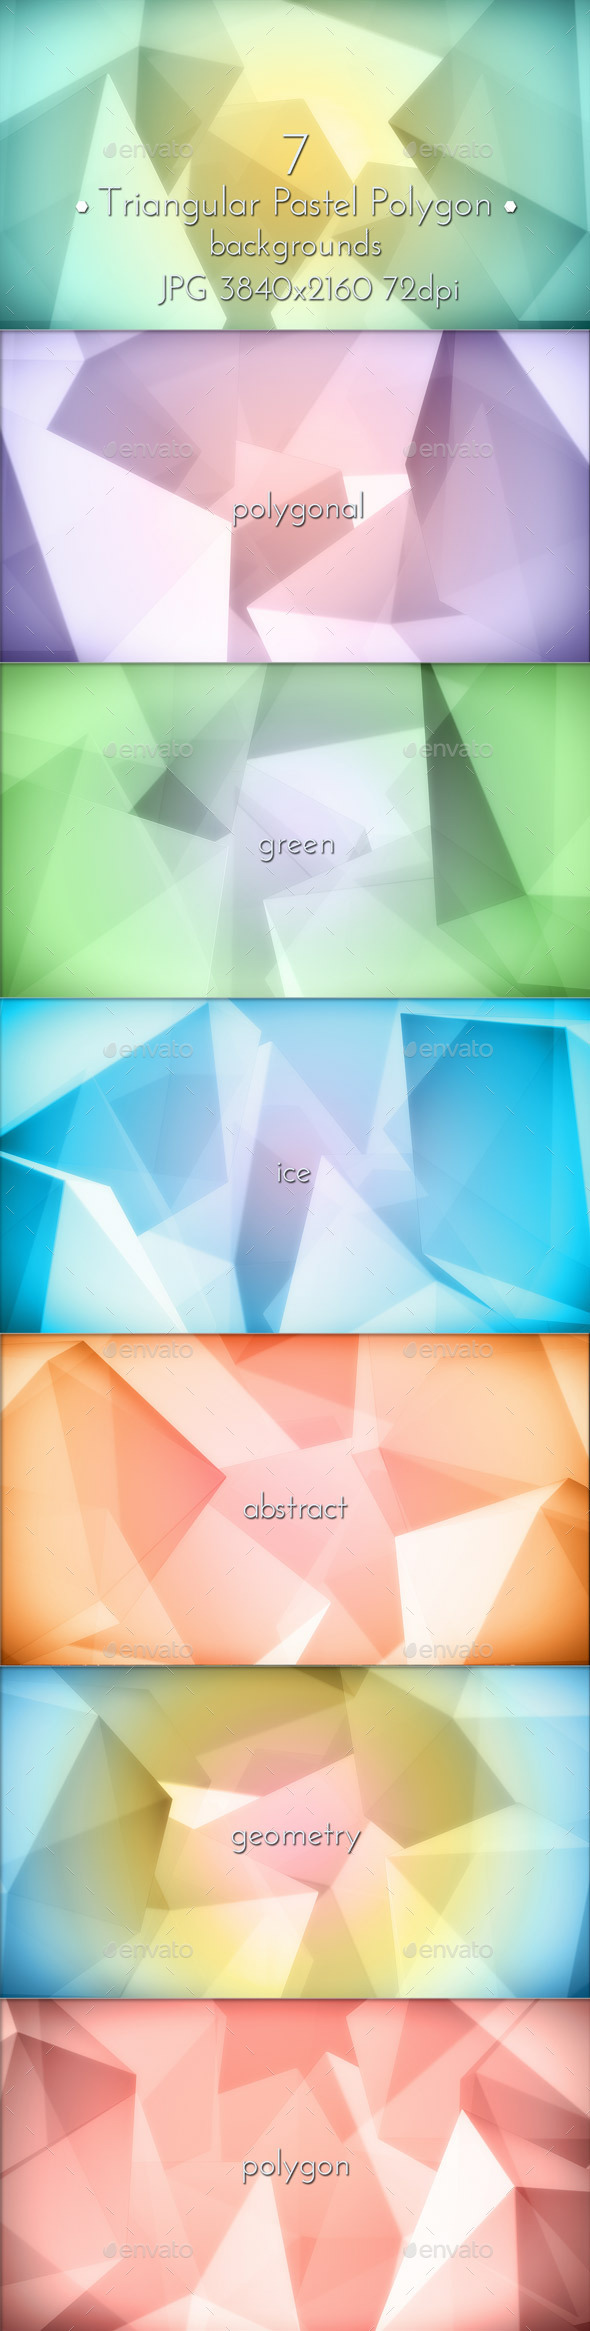 Pastel Polygon Background - Abstract Backgrounds